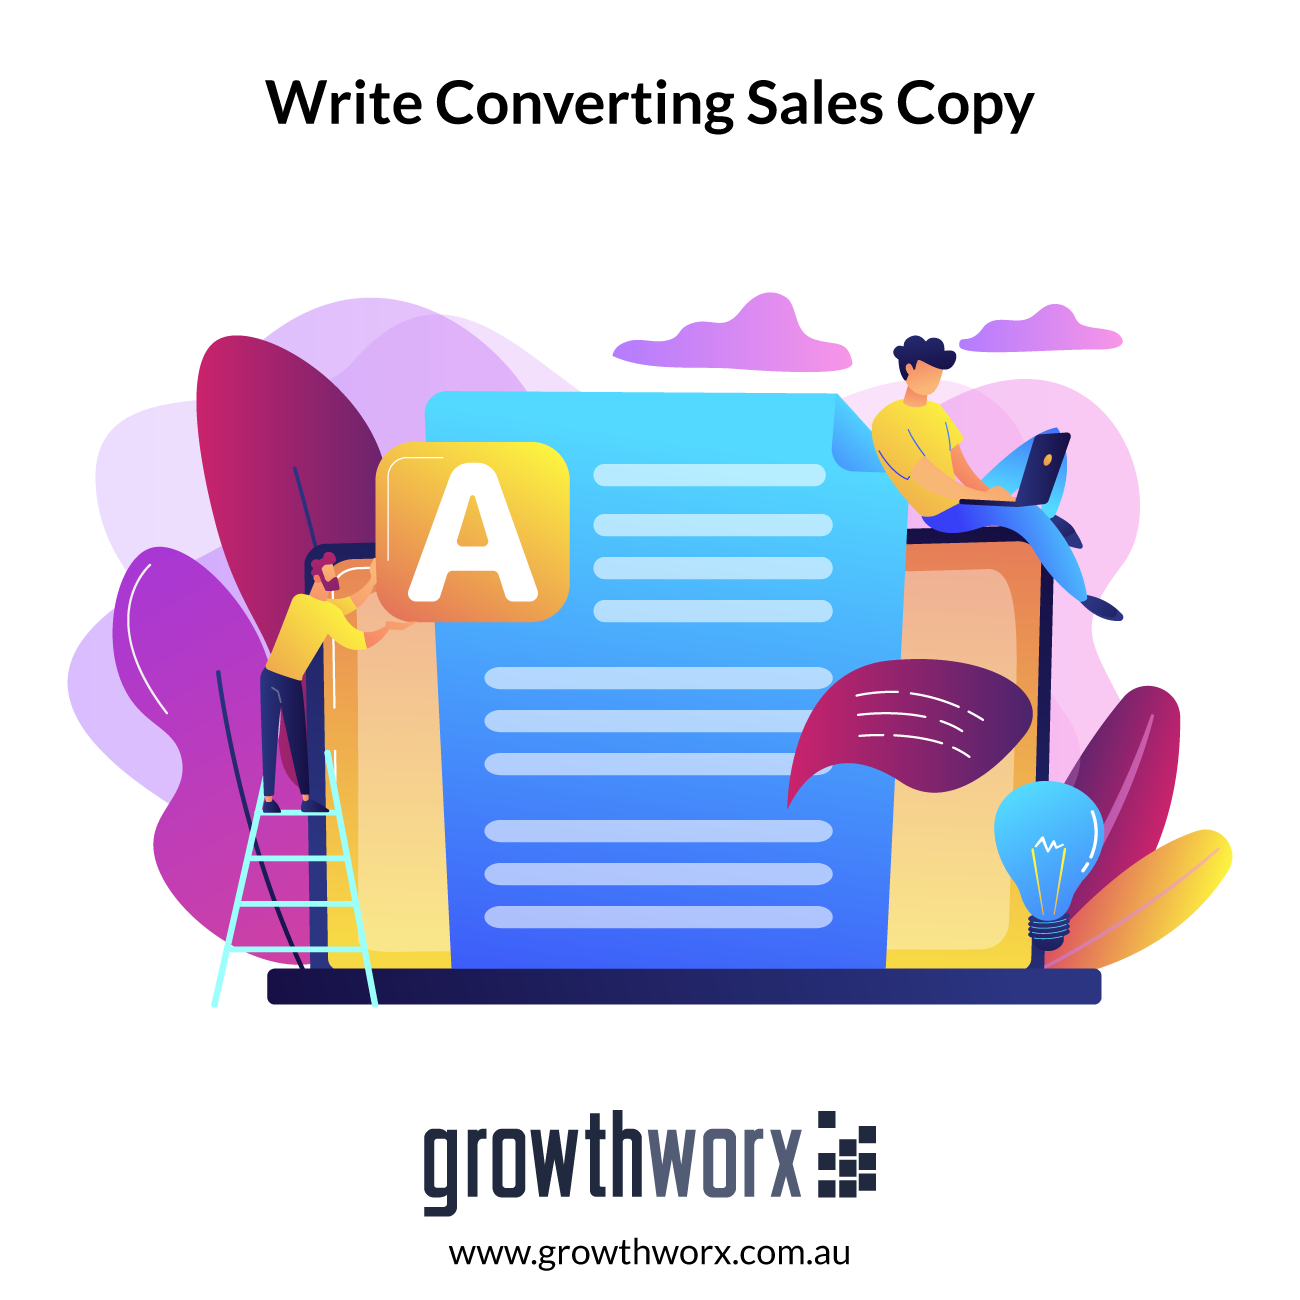 I will write converting sales copy for your digital advertising 1